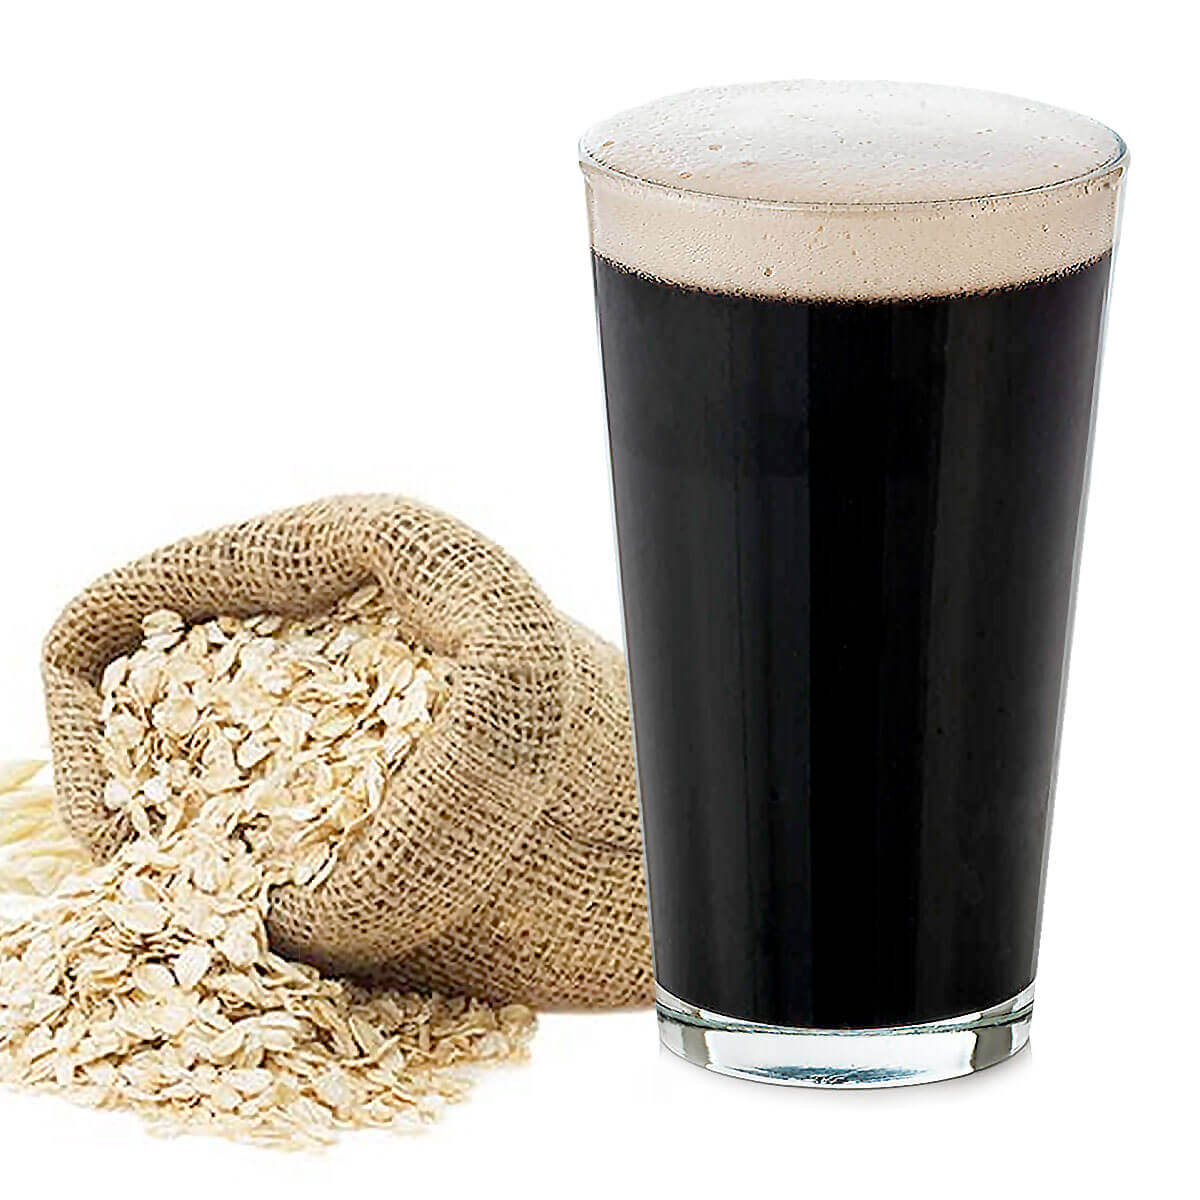 An English Oatmeal Stout in a Shaker Pint Glass